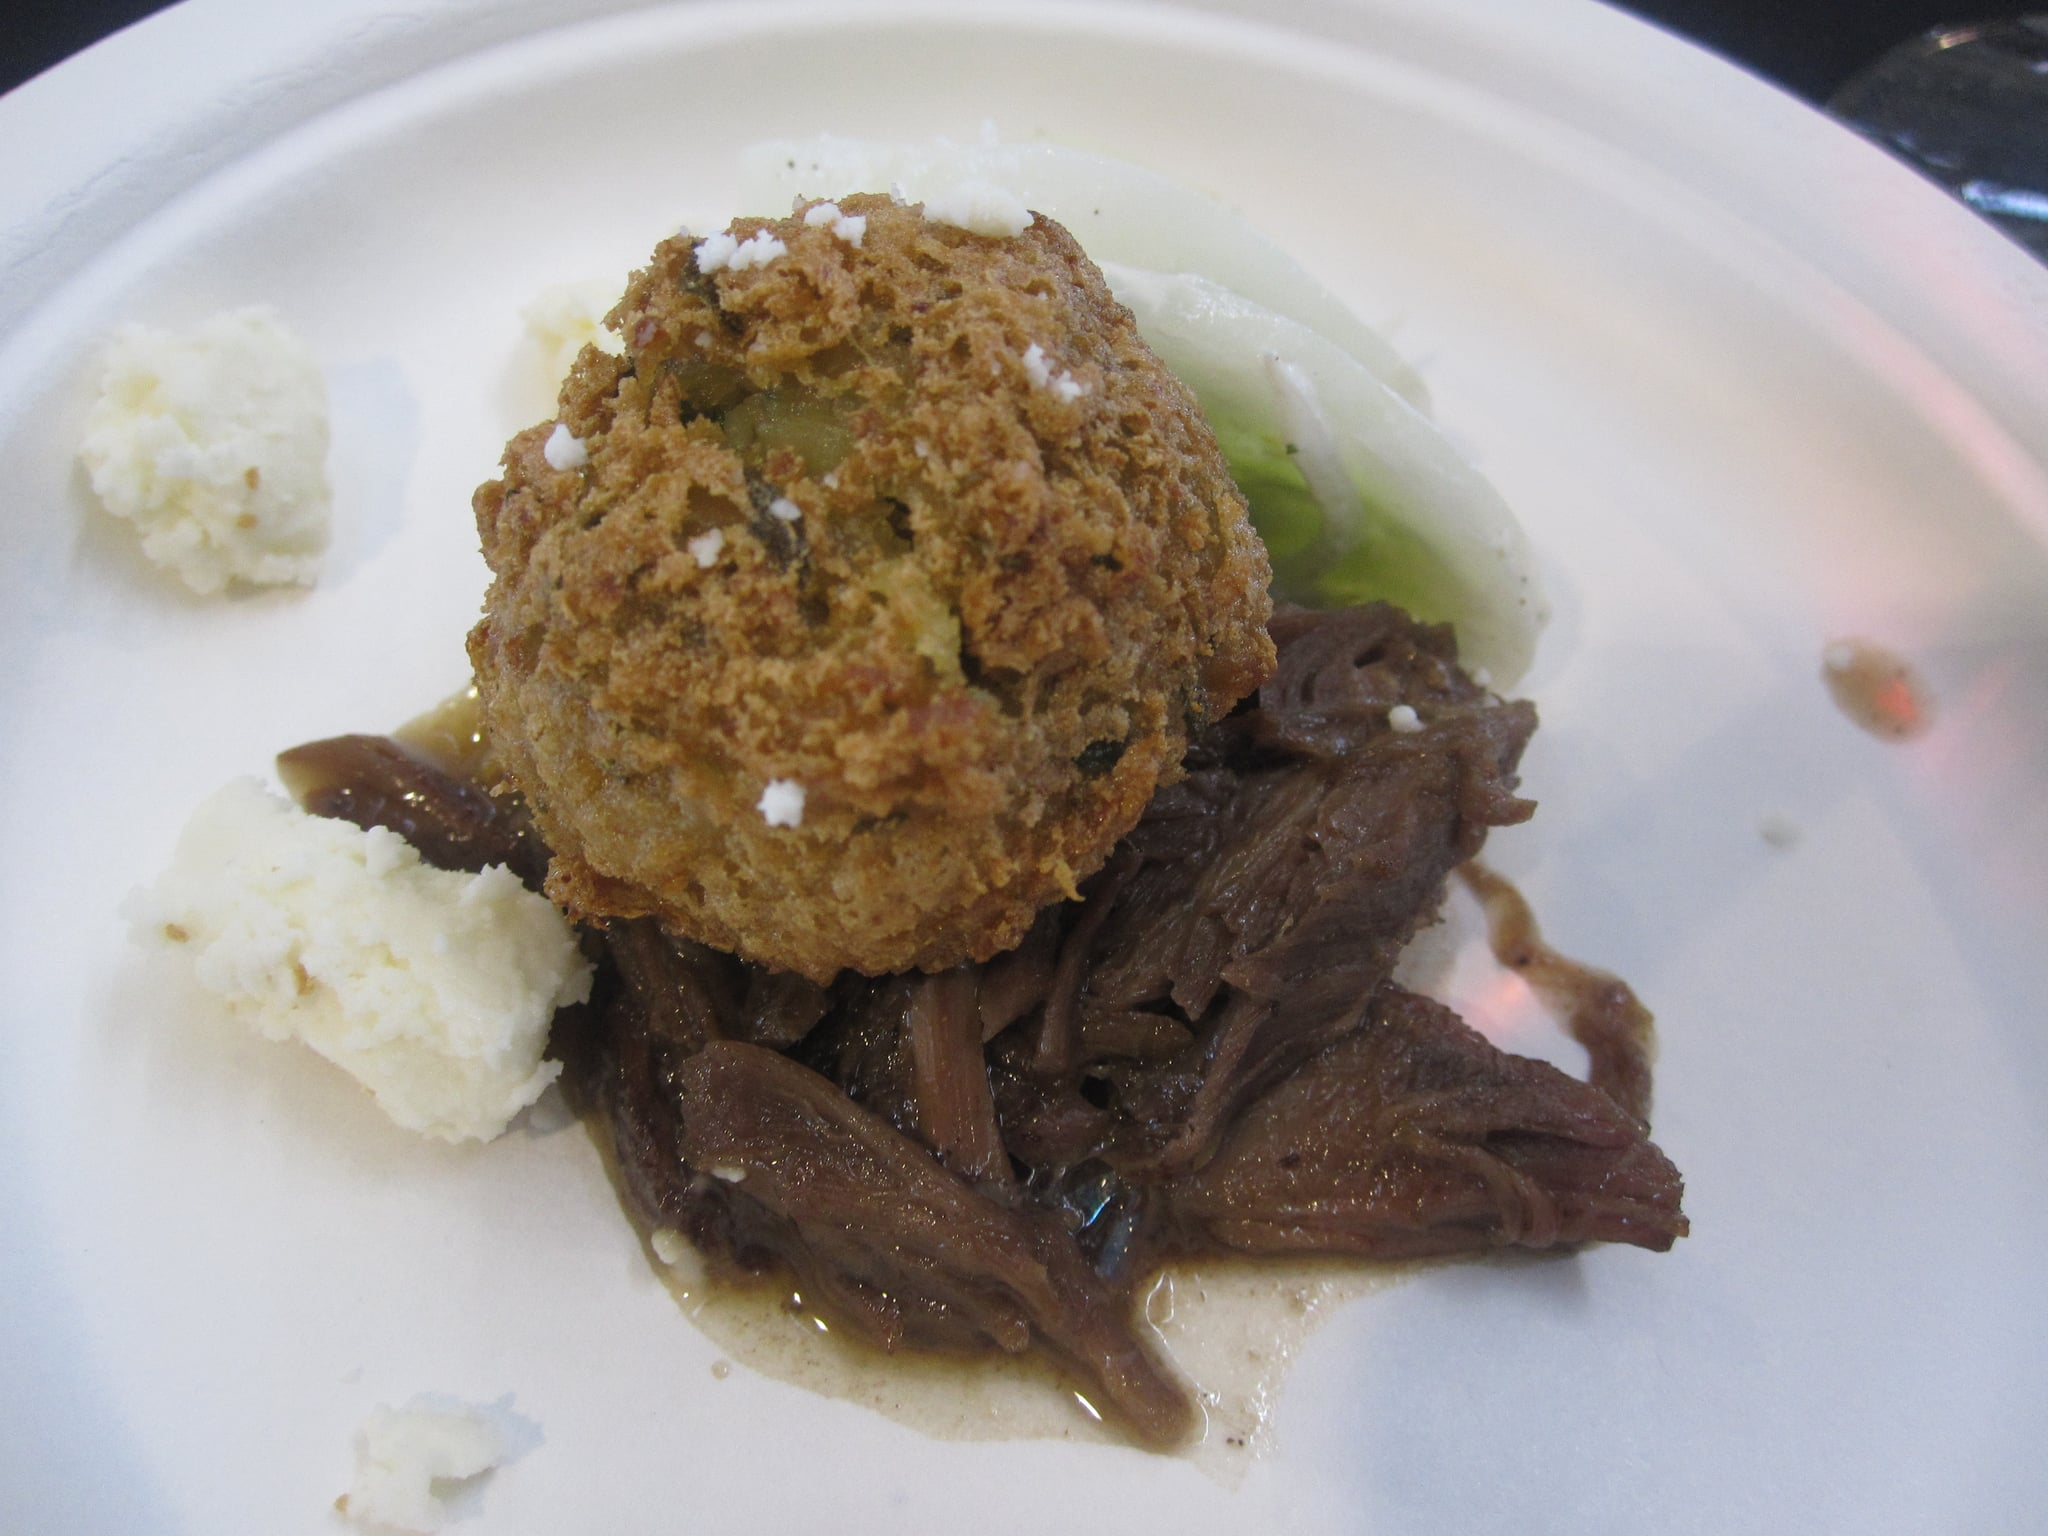 Braised lamb shank with falafel, feta, and minted yogurt was my favorite preparation of the shanks.